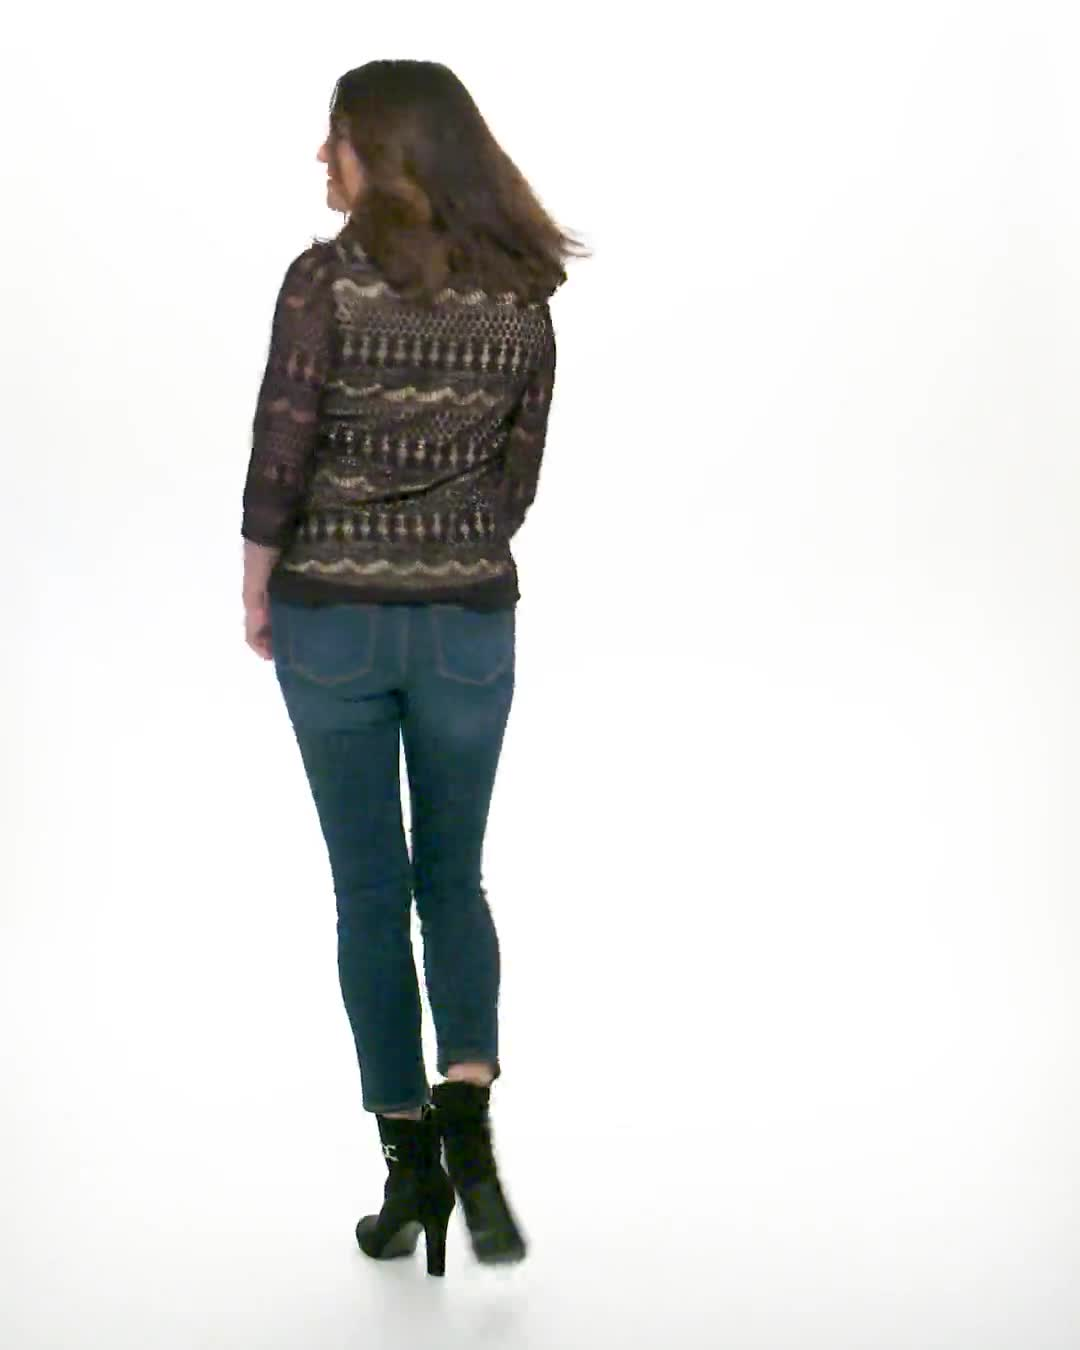 Crochet Lined Knit Top - Video